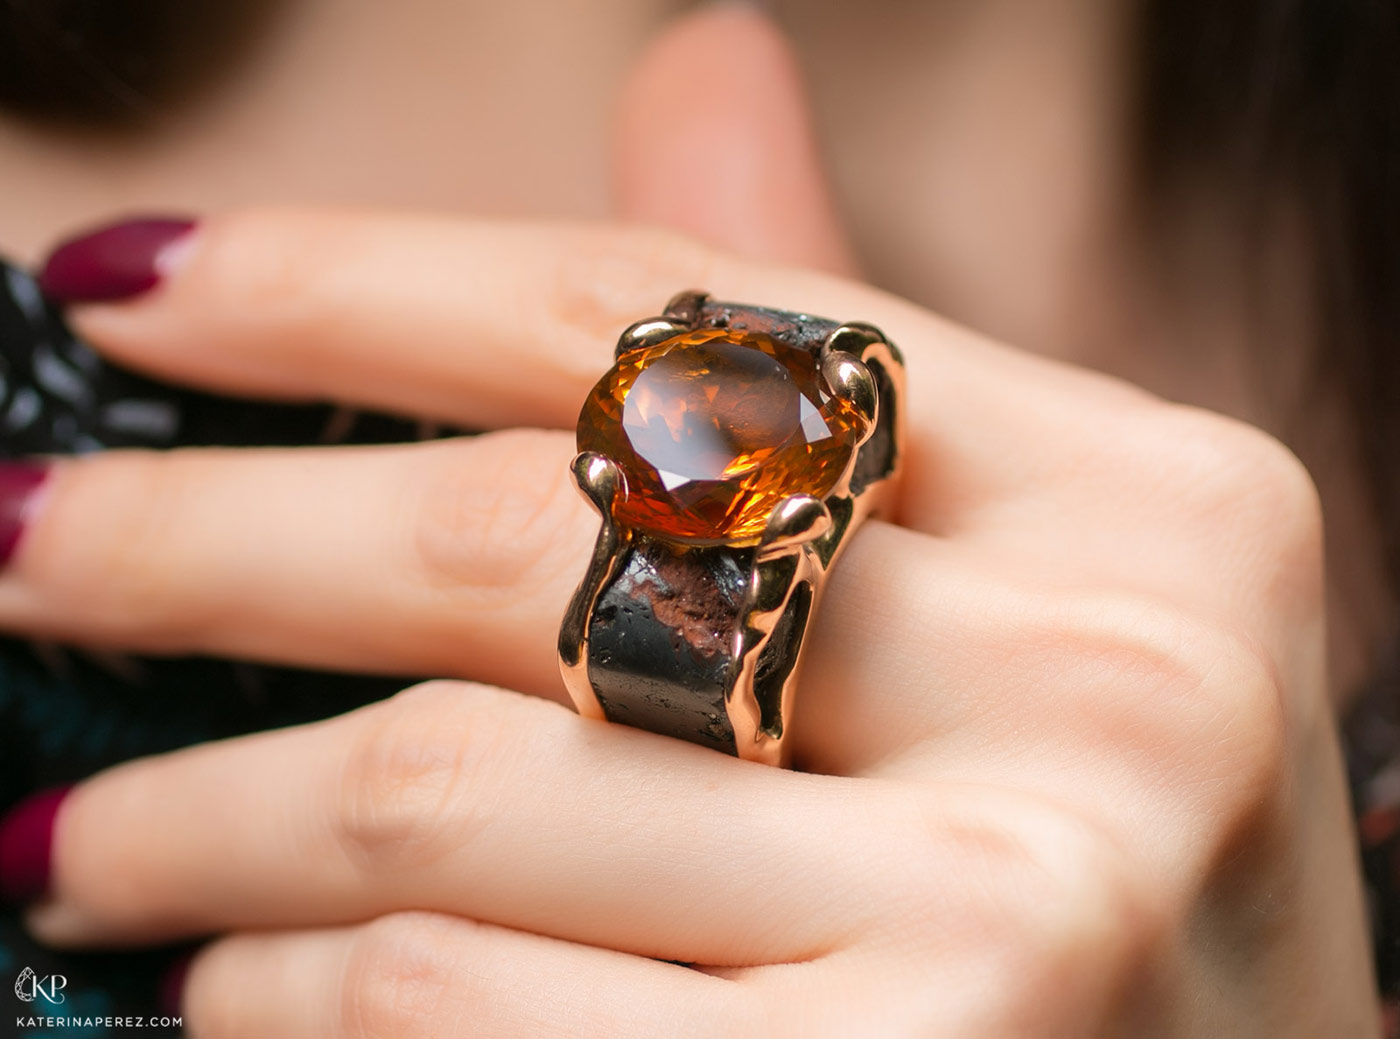 Philippe Pfeiffer ring with 22.40ct Palmeira citrine in hematite and yellow gold